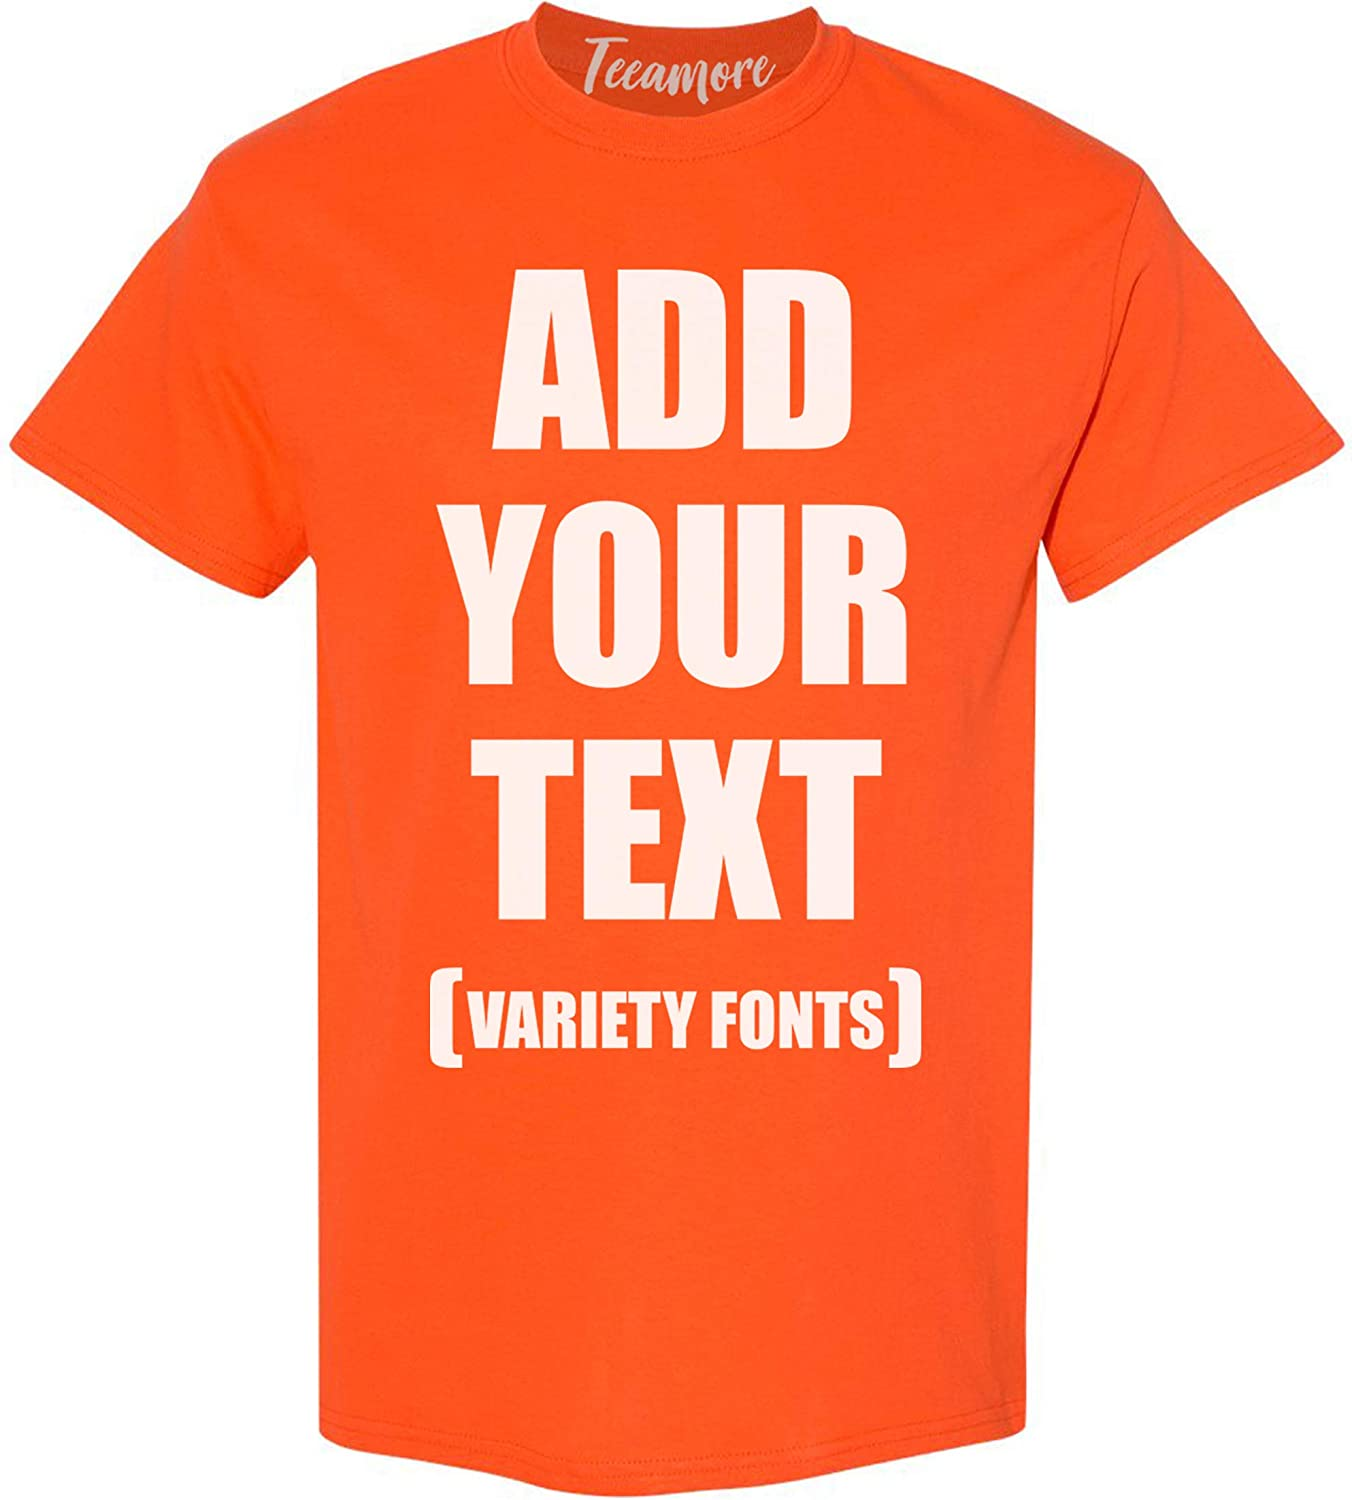 Custom T Shirts for Men Women Max 41% OFF New arrival Add Text Personalized Your Unise